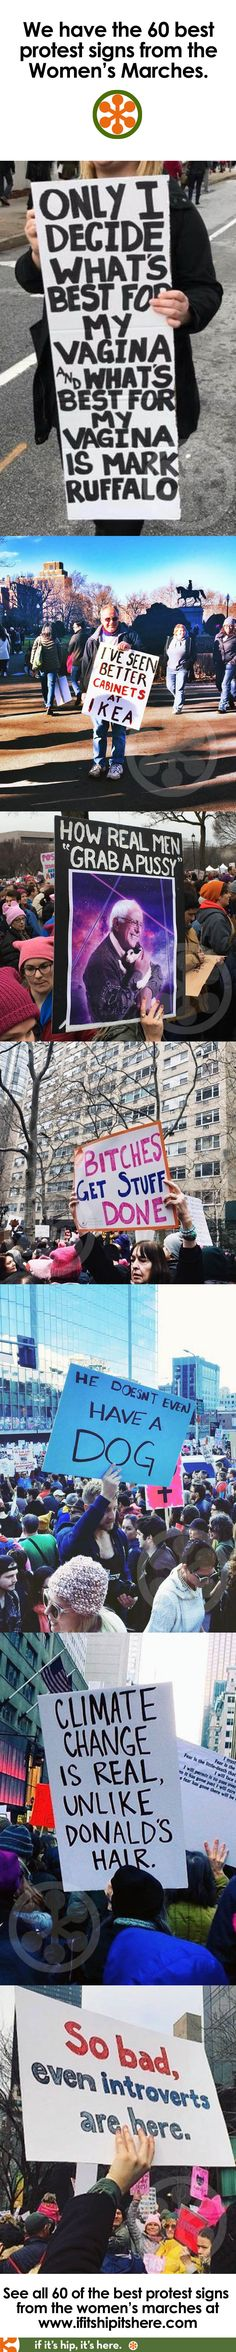 No other post has better protest signs from the Women's Marches than we do. See them all at http://www.ifitshipitshere.com/womens-march-signs/  #womensmarchsigns